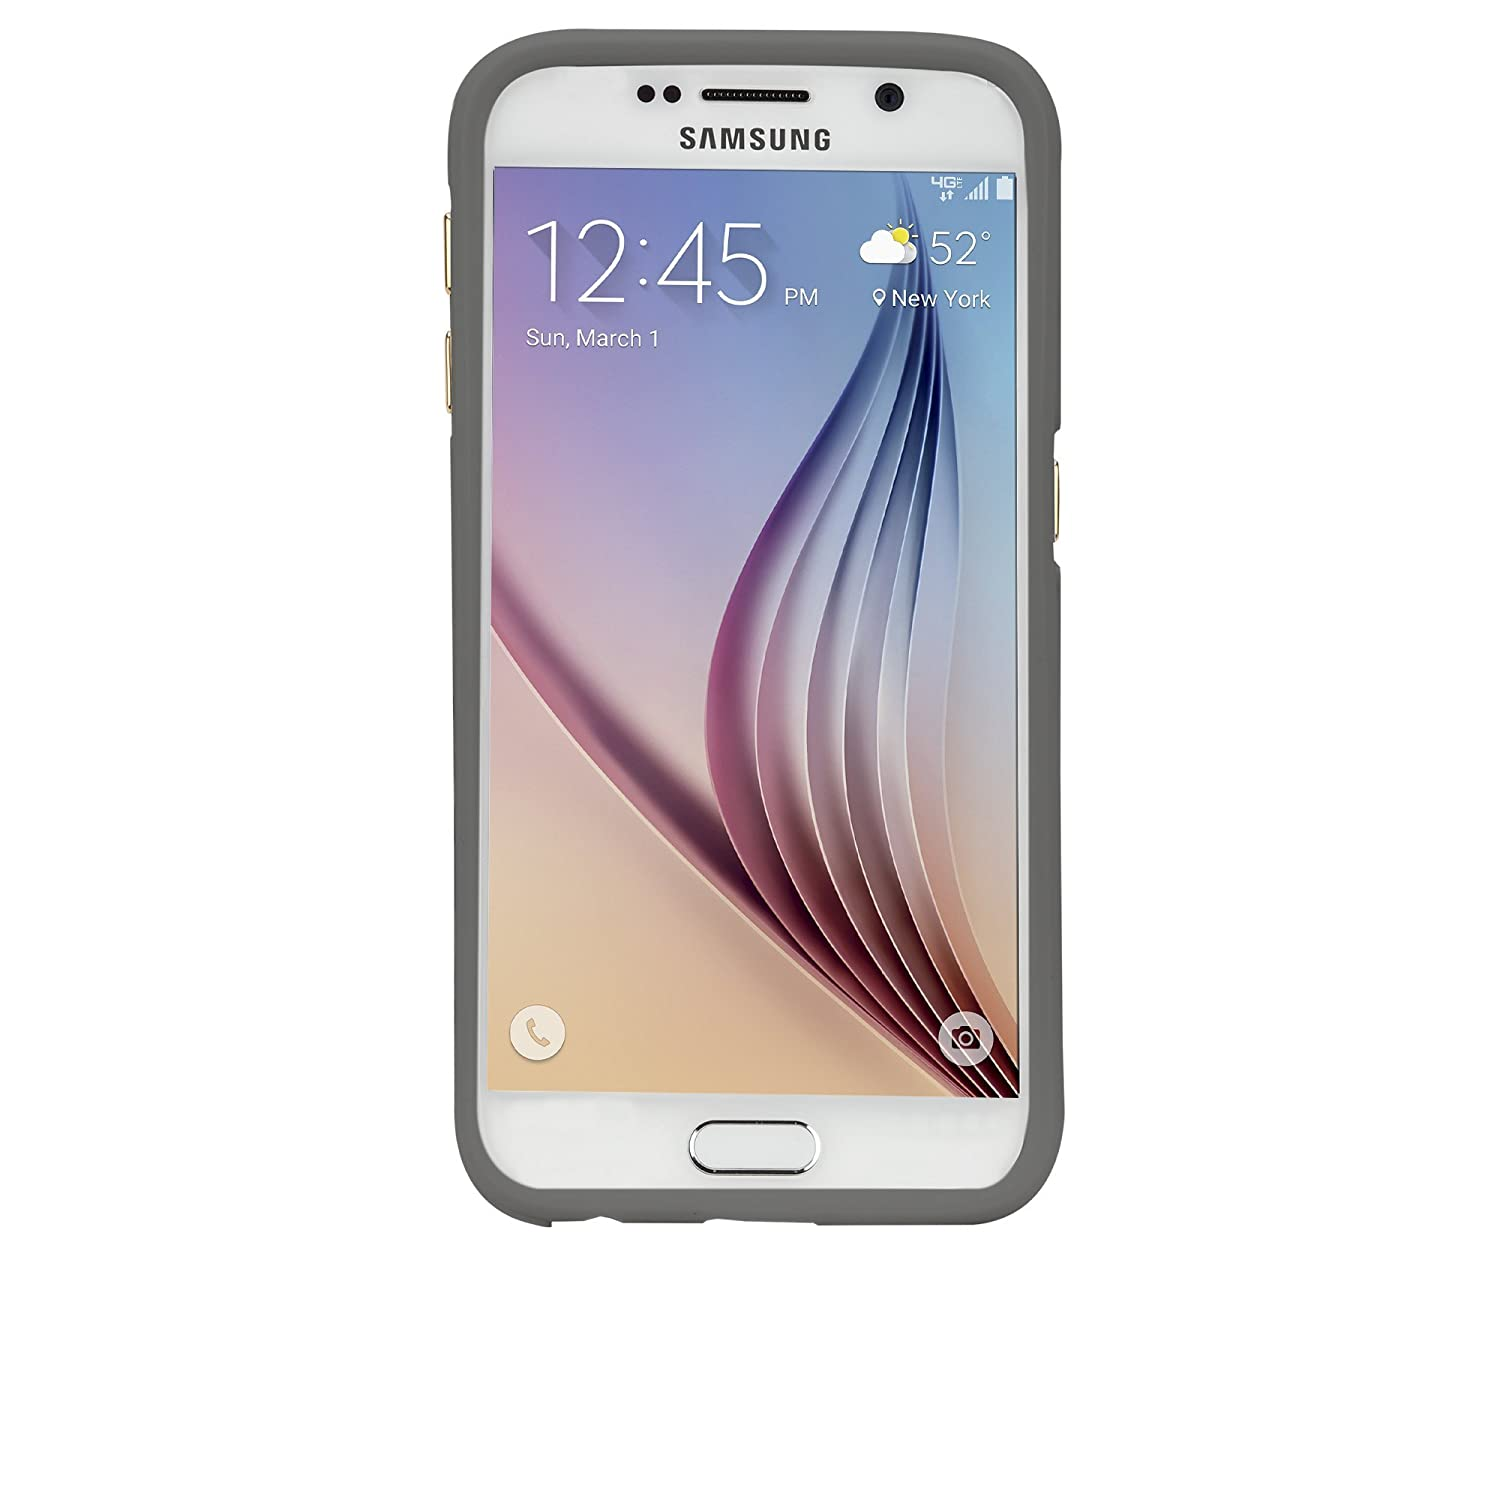 Case-Mate Samsung Galaxy S5 POP! Case with Kick Stand - Retail Packaging - Purple / Blue